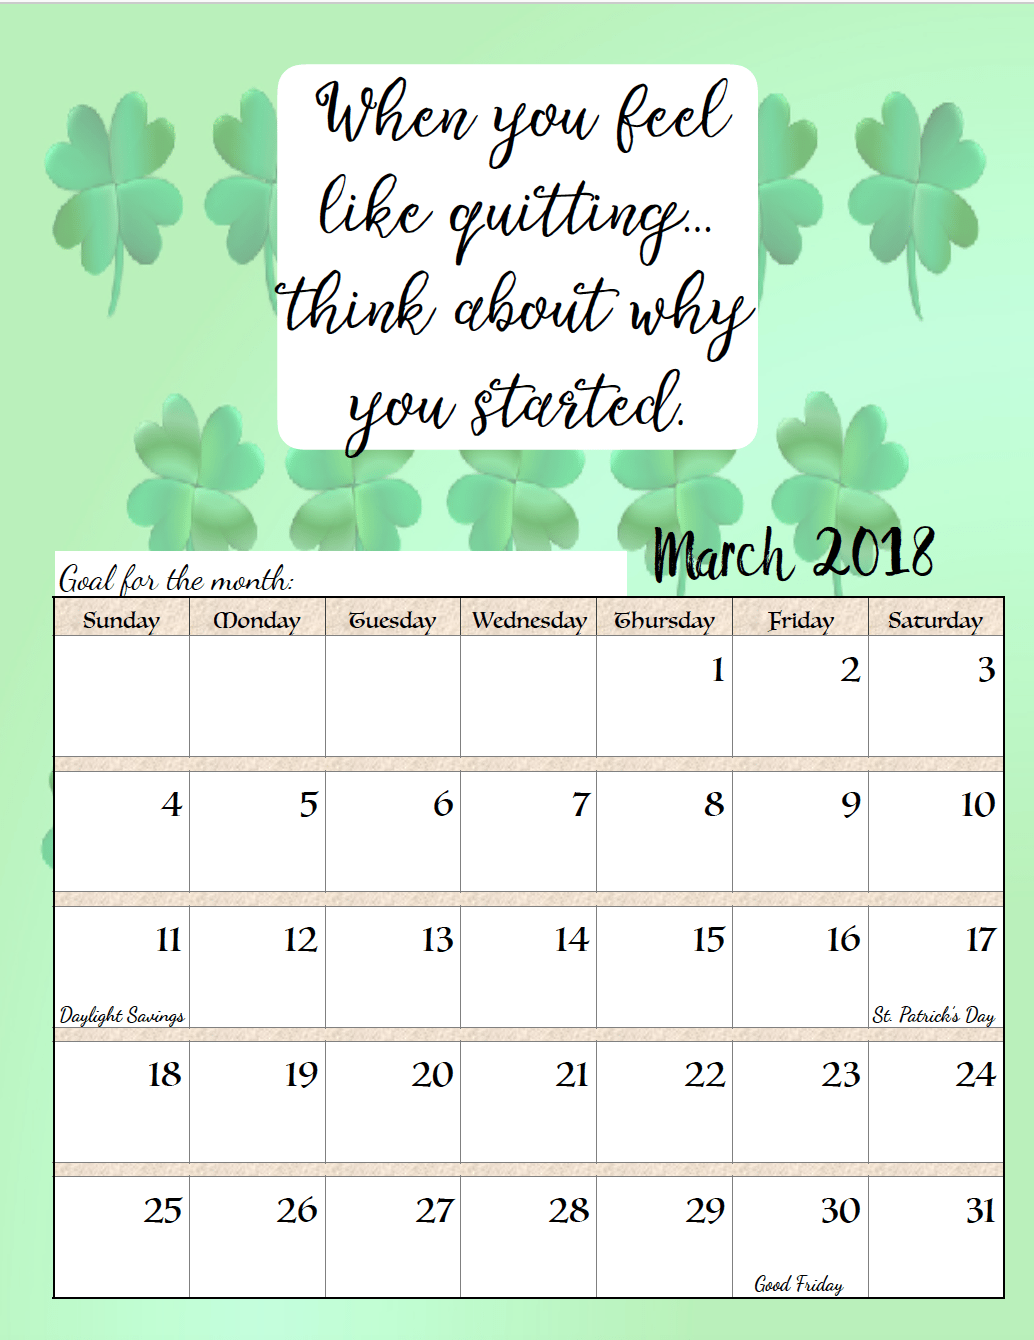 March 2018 Calendar With Quotes Calendar printables